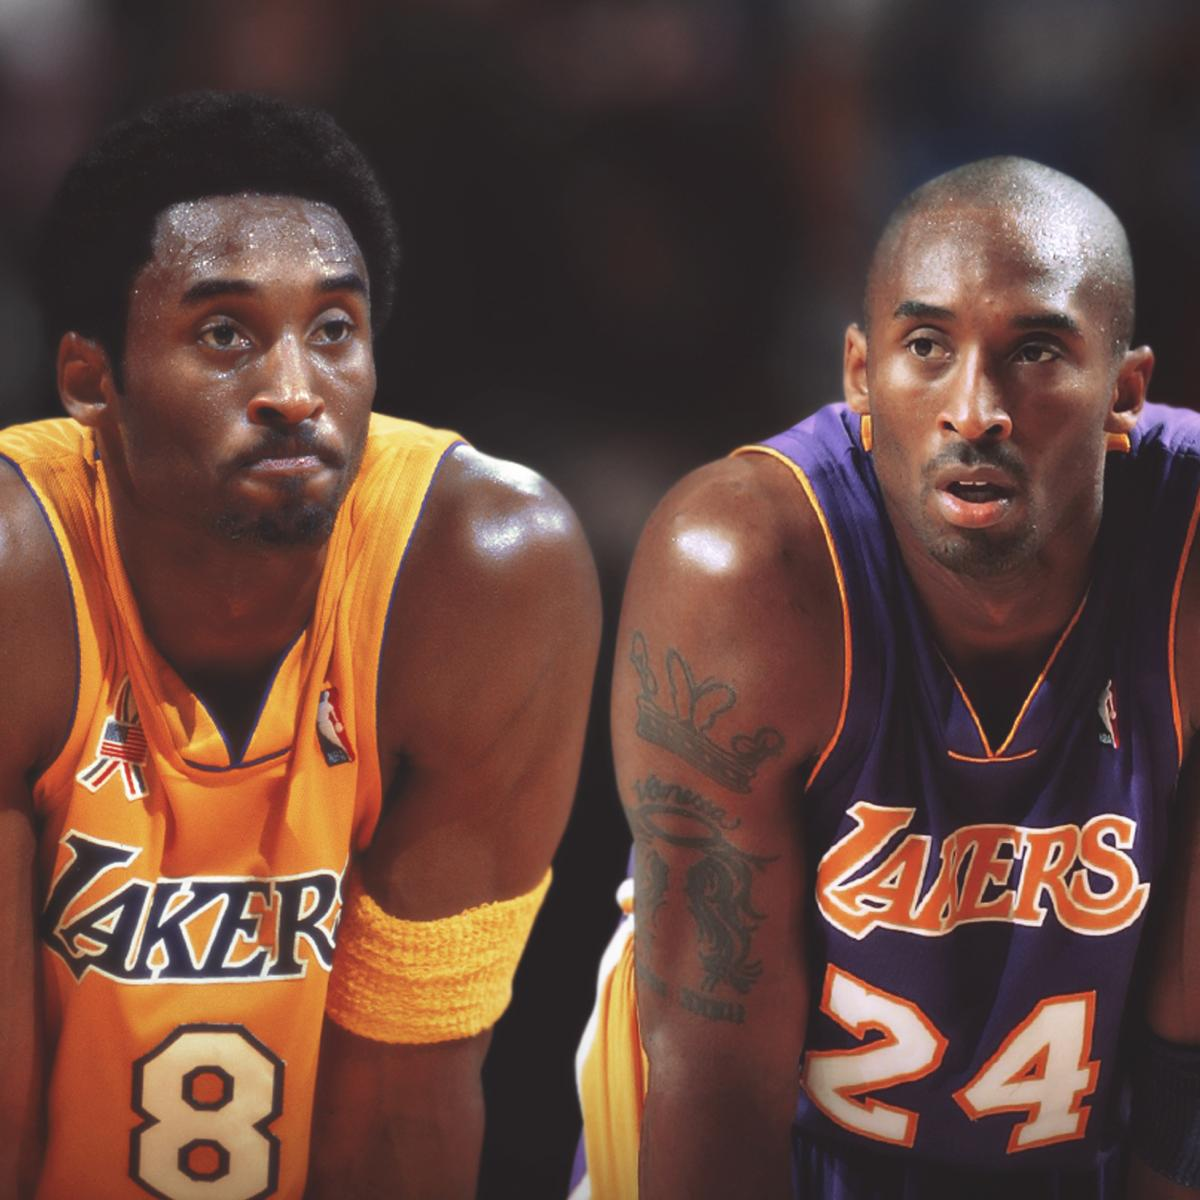 5368fec50fd Which Number Lakers Jersey Should Kobe Bryant Wear in His Statue — 8 or 24